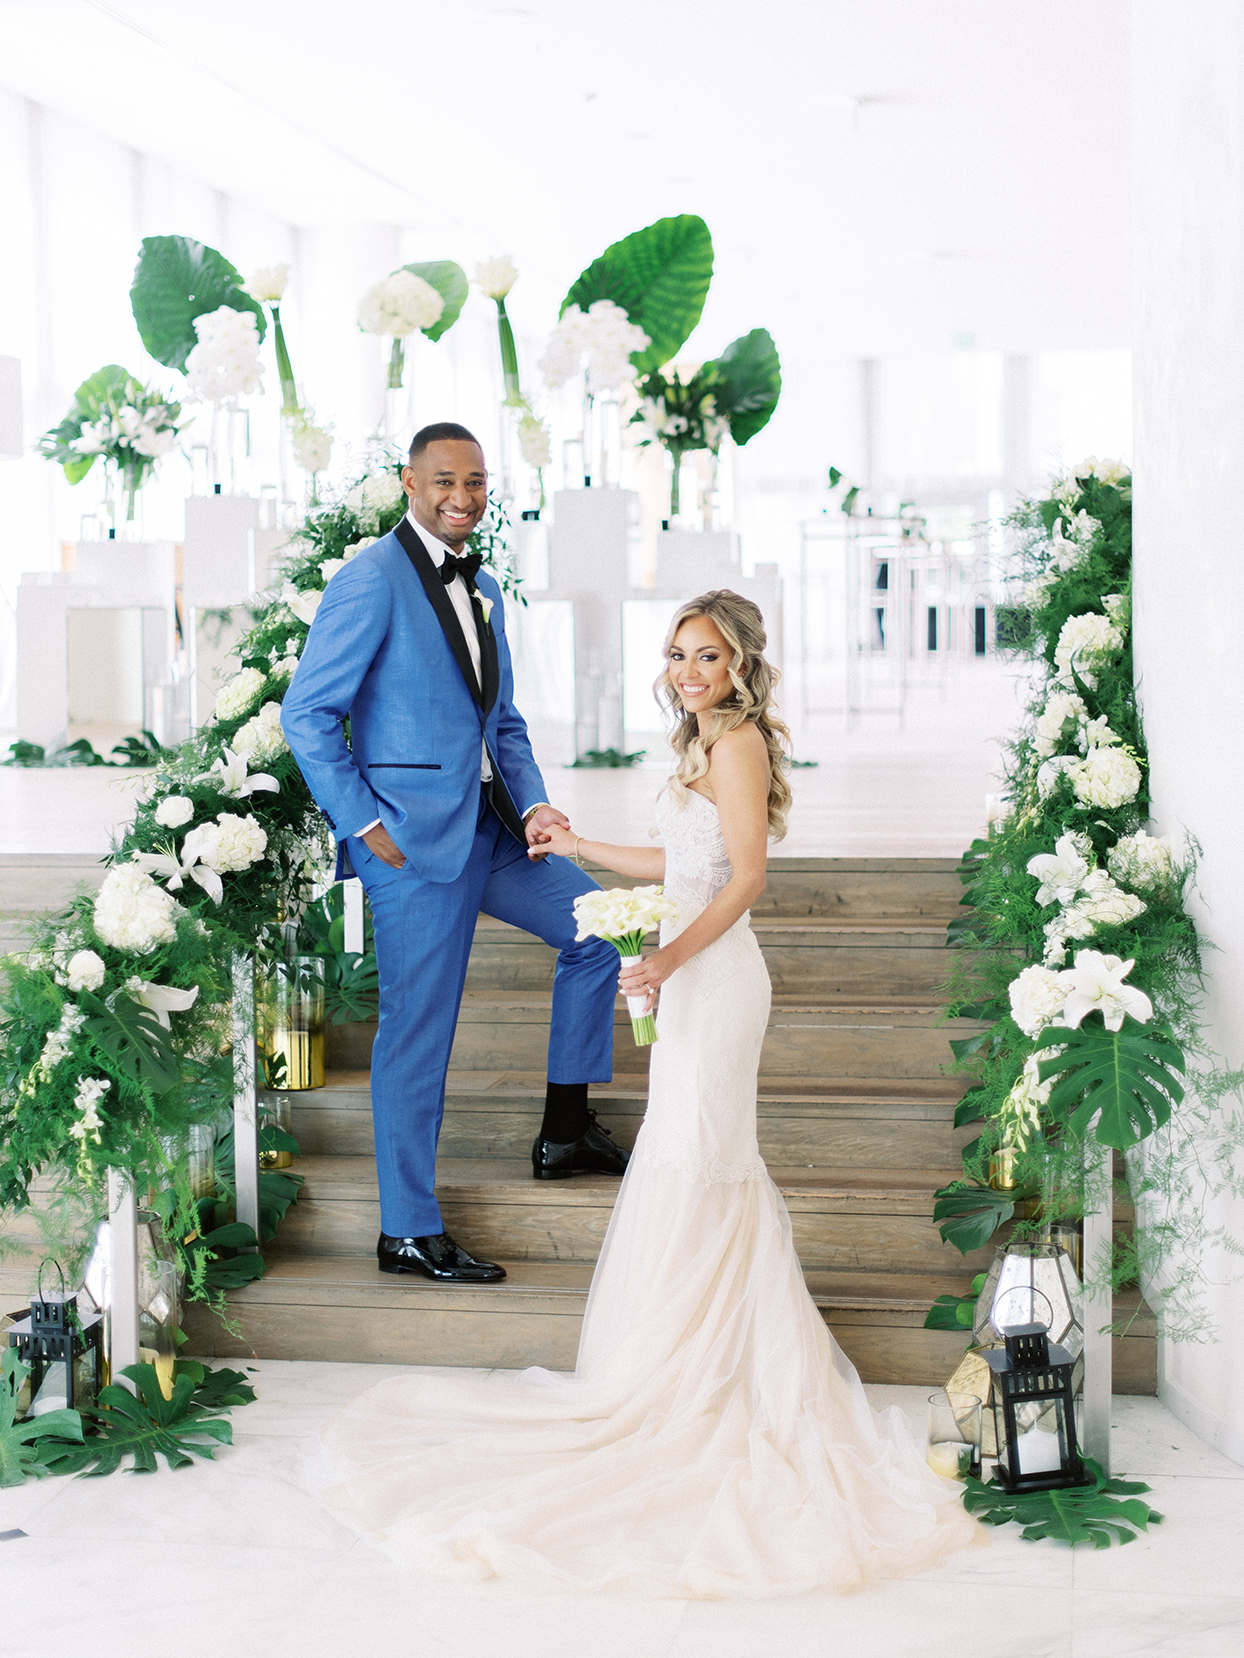 Bride and groom holding hands on stairs